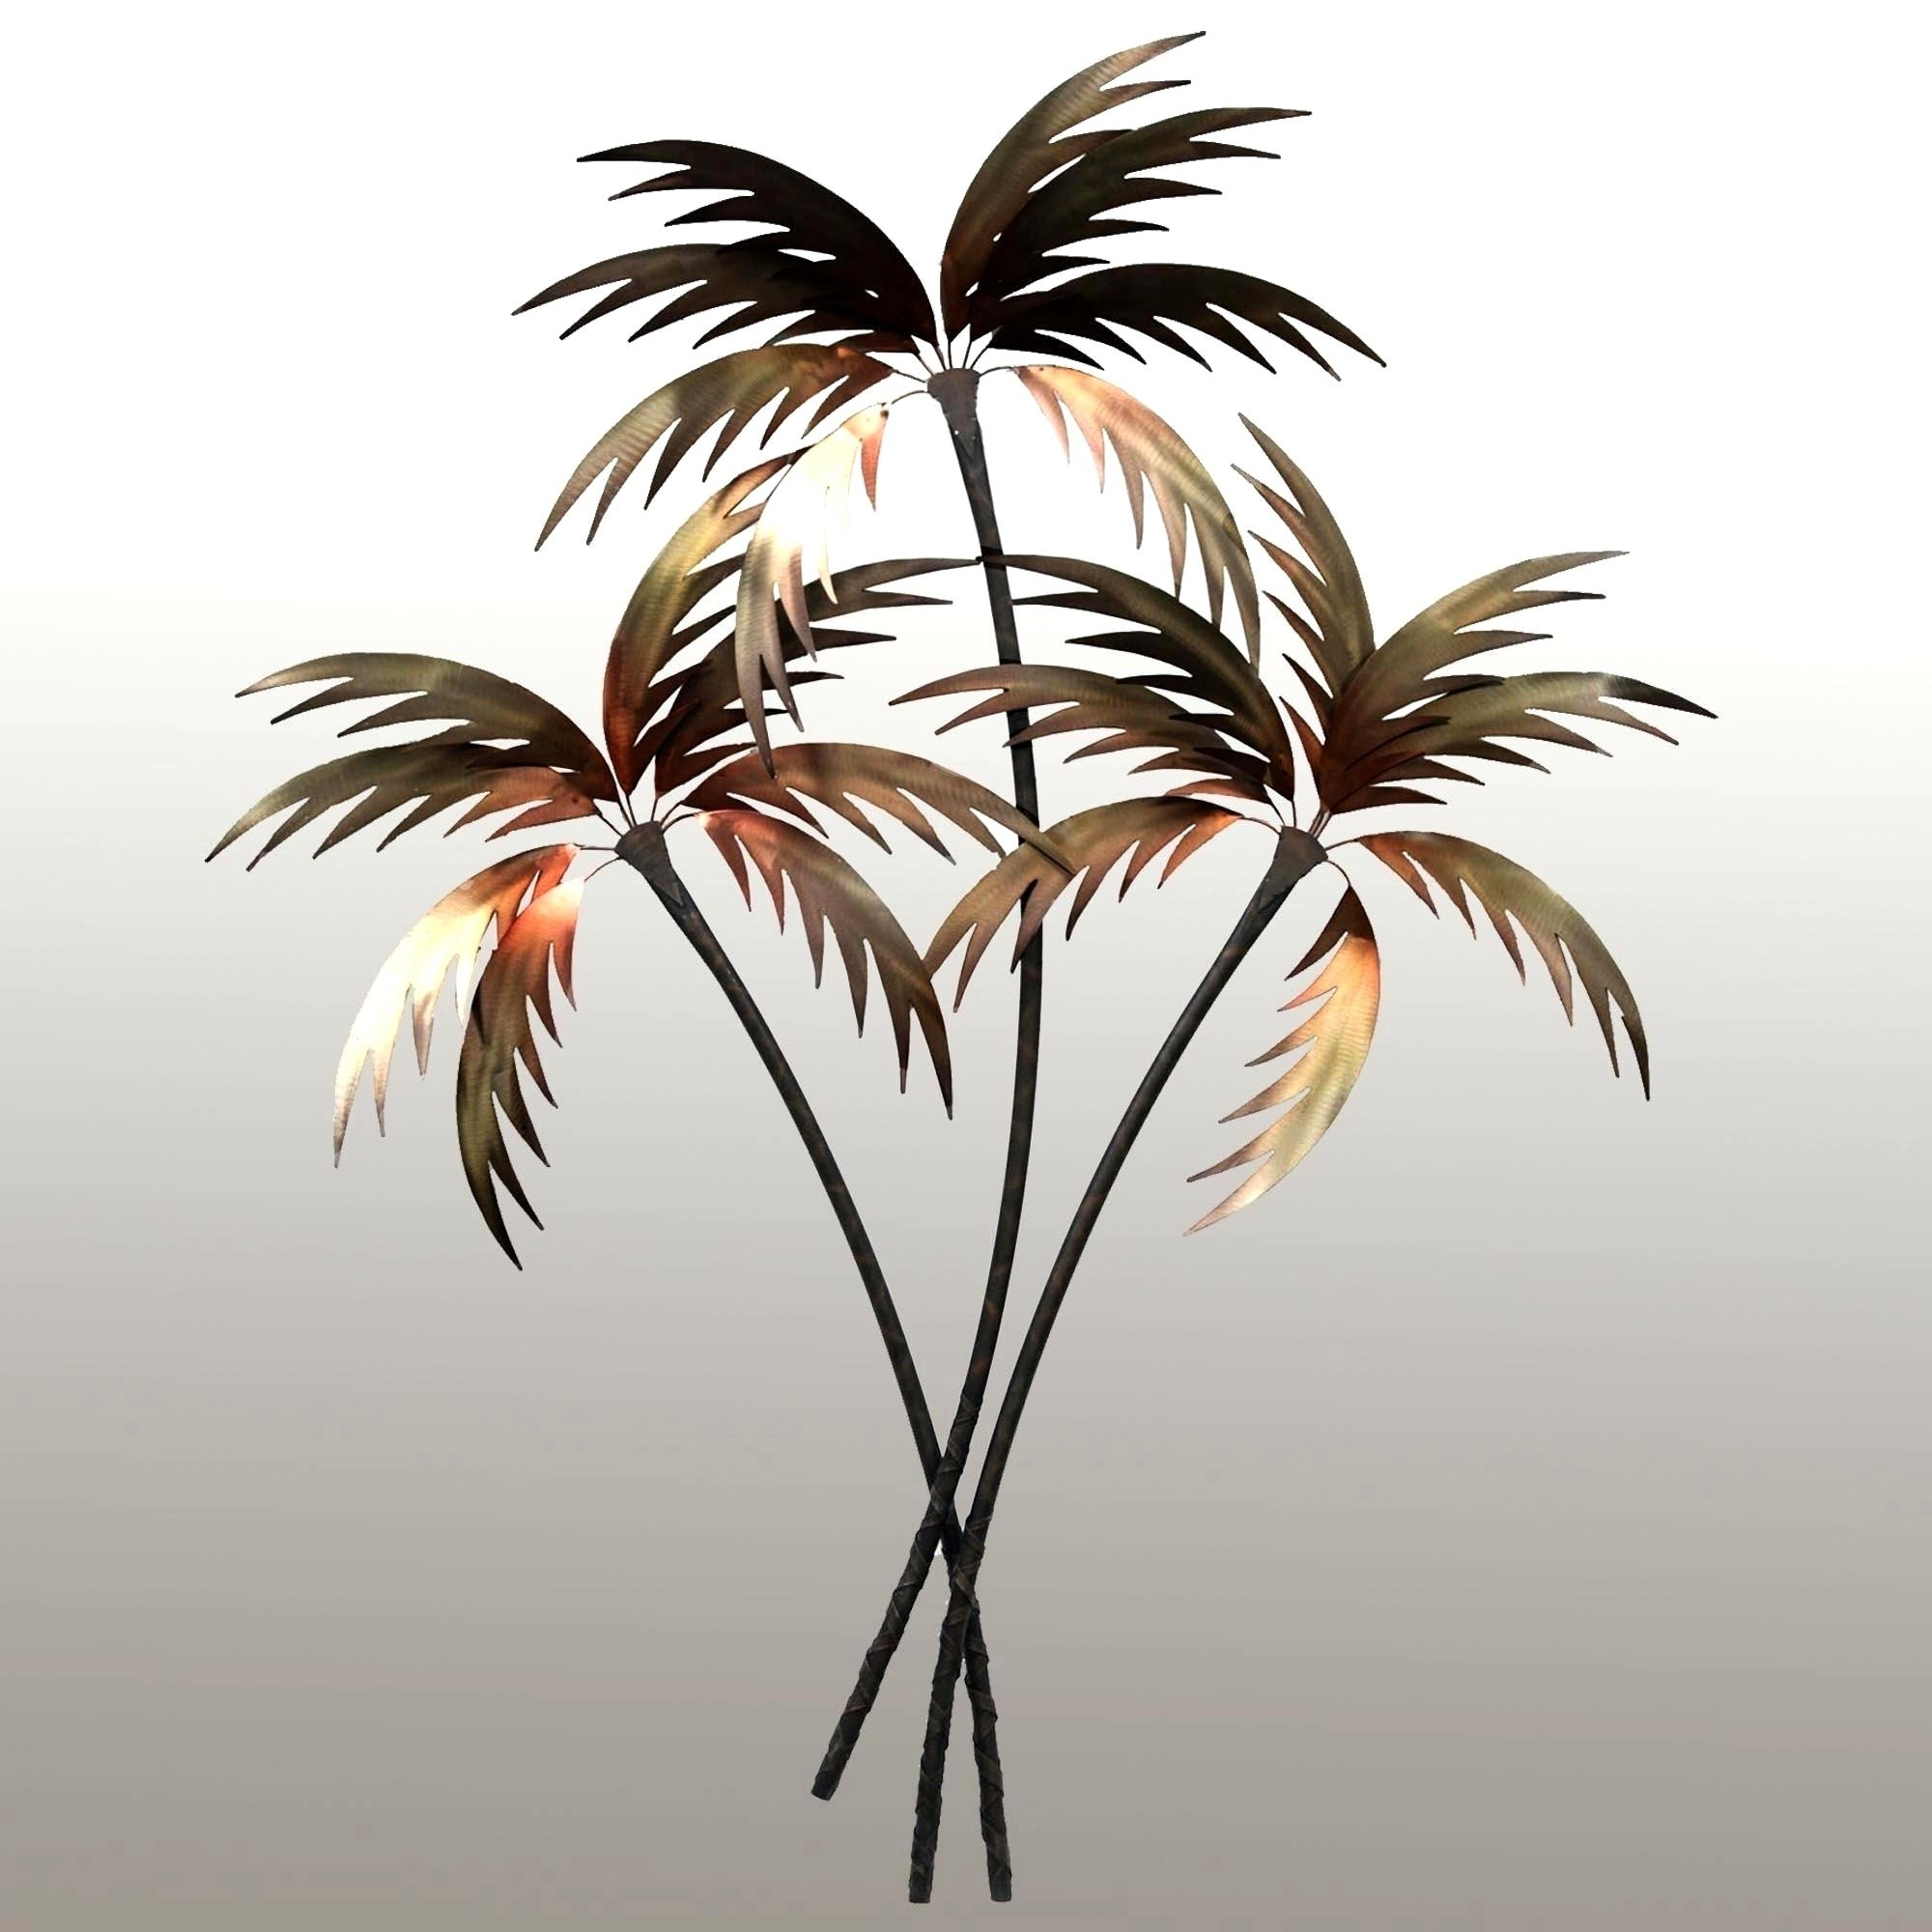 Enchanting Palm Tree Oasis Metal Wall Ideas Wall Ideas Outdoor Throughout 2018 Palm Tree Metal Wall Art (View 1 of 15)